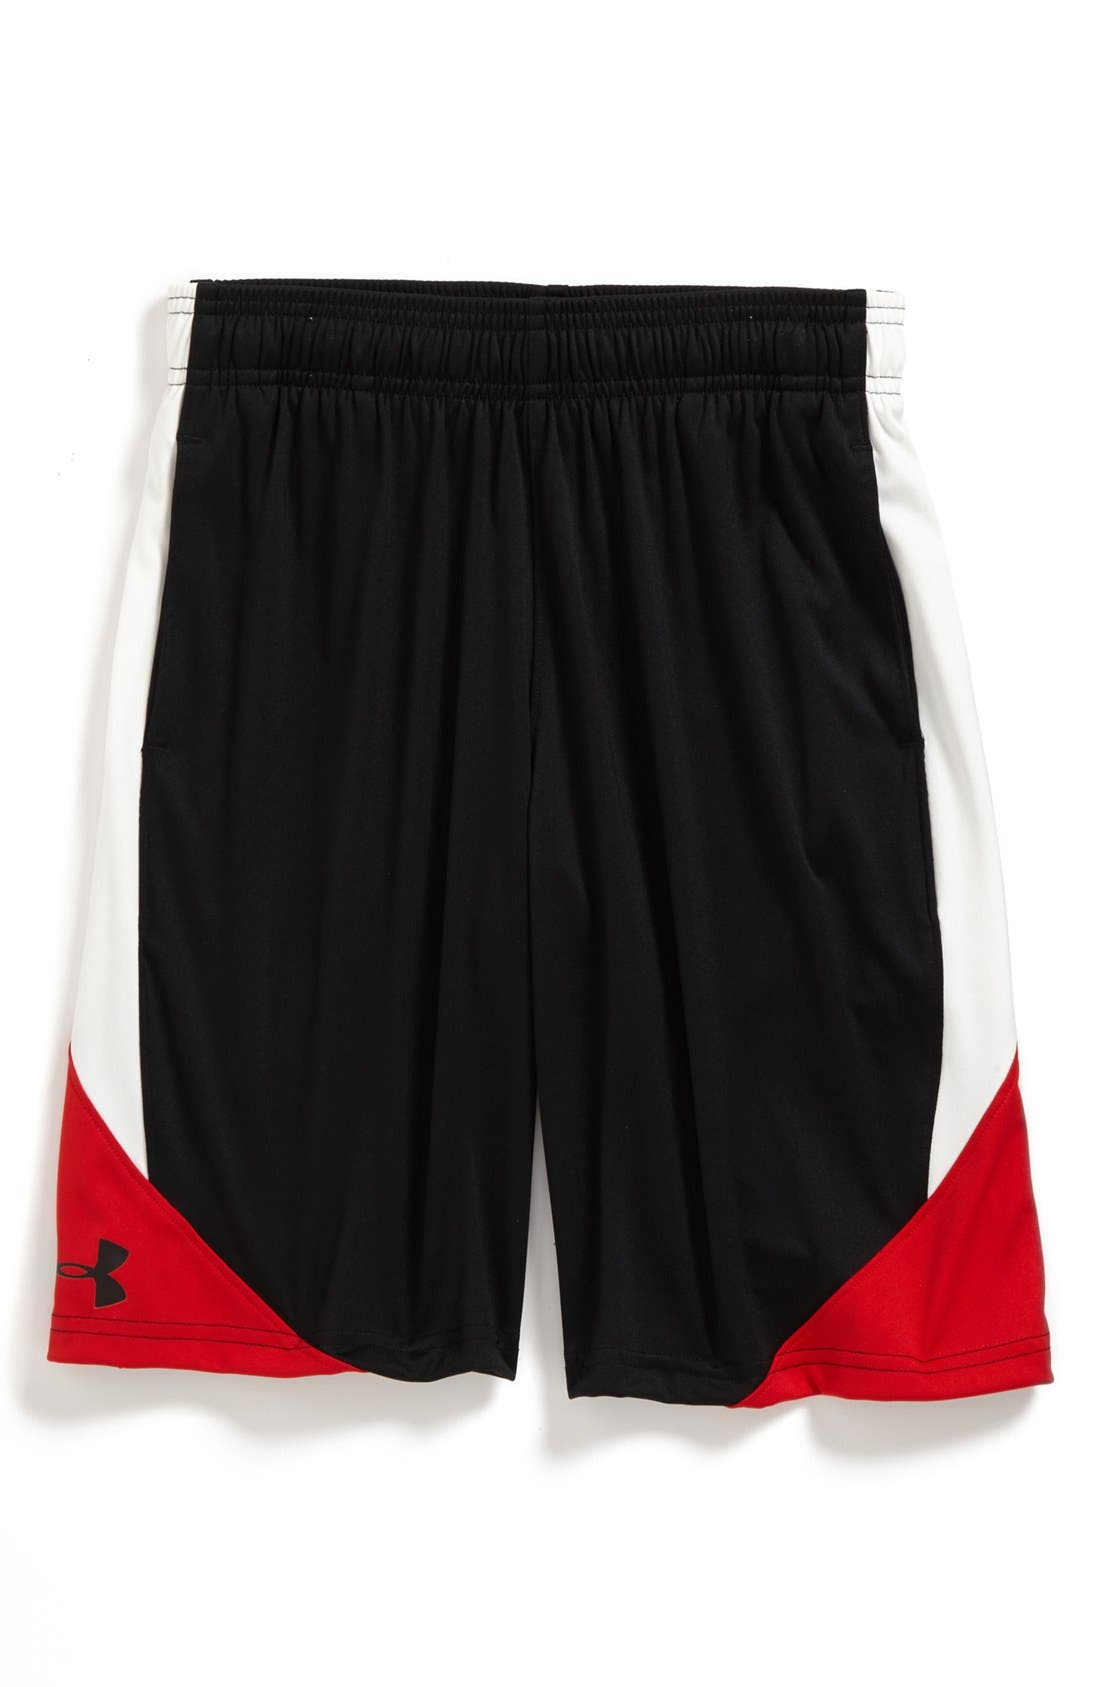 Alternate Image 1 Selected - Under Armour 'Trilogy' Shorts (Big Boys)